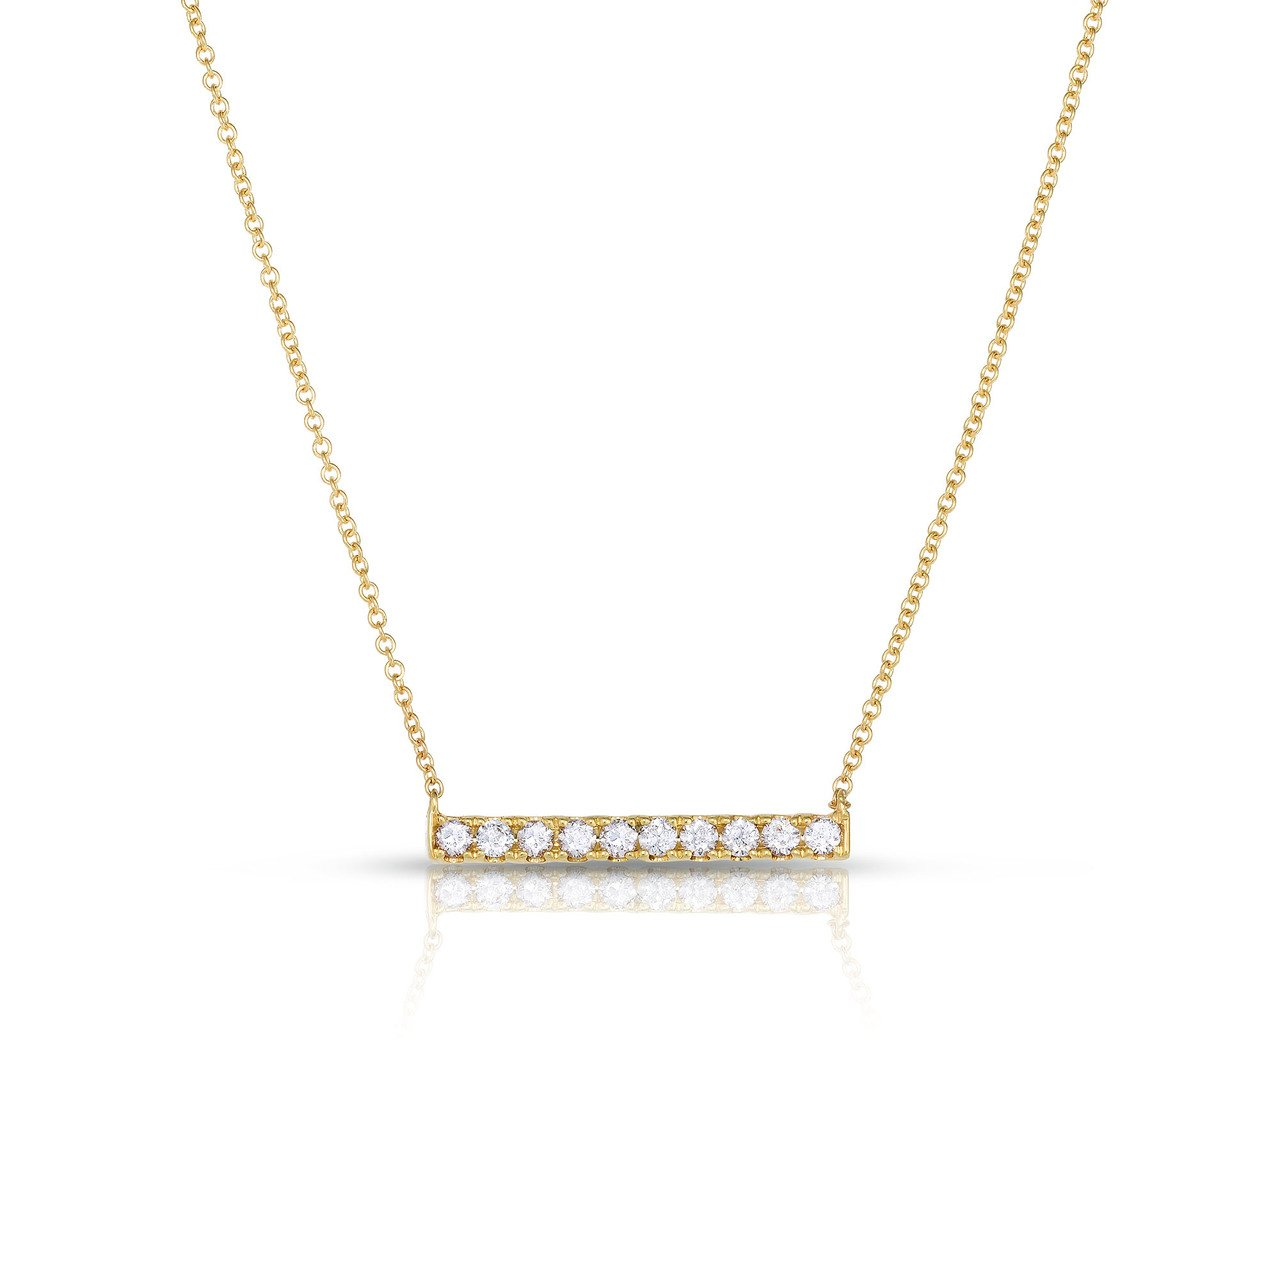 Sabel Collection 14K Yellow Gold Diamond Bar Necklace